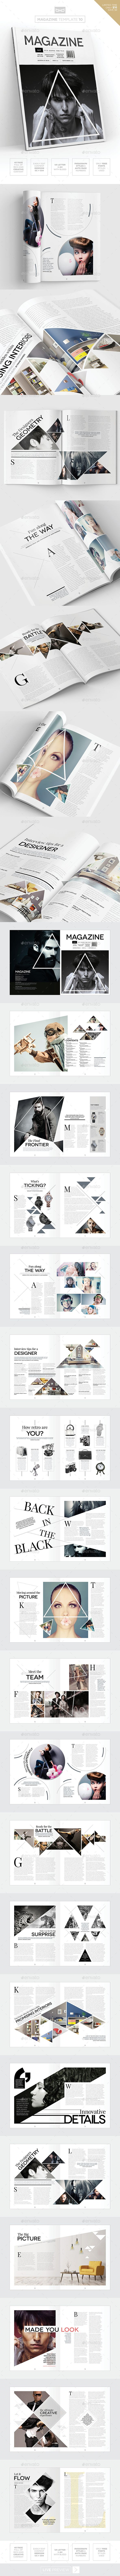 Magazine Template - InDesign 40 Page Layout V10 - #Magazines Print #Templates Download here: https://graphicriver.net/item/magazine-template-indesign-40-page-layout-v10/19504858?ref=alena994